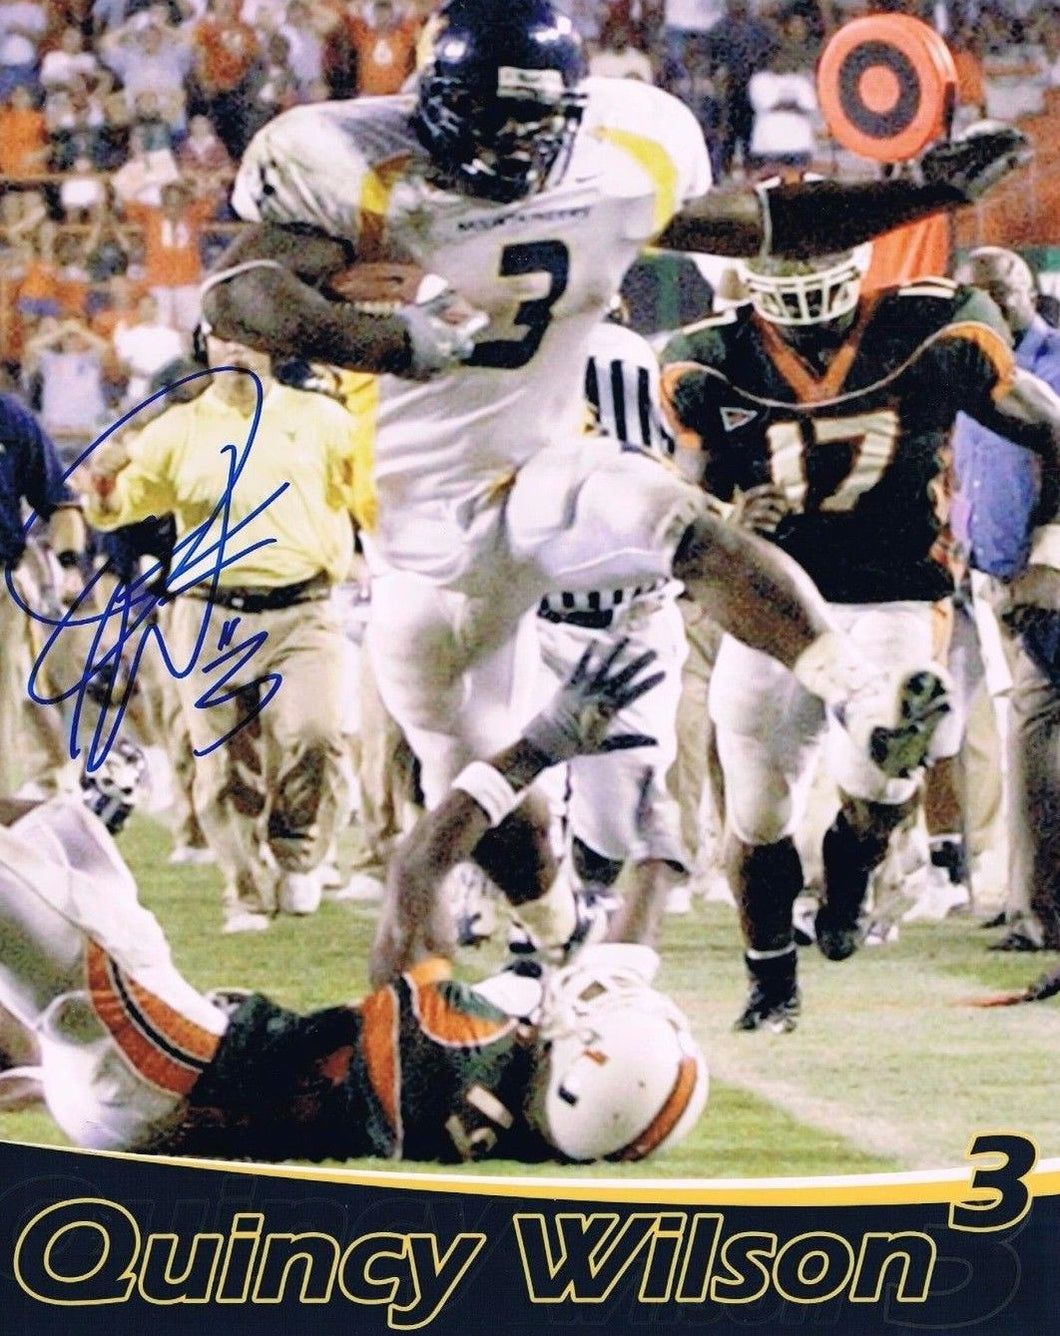 wvu football, quincy wilson autograph, the run